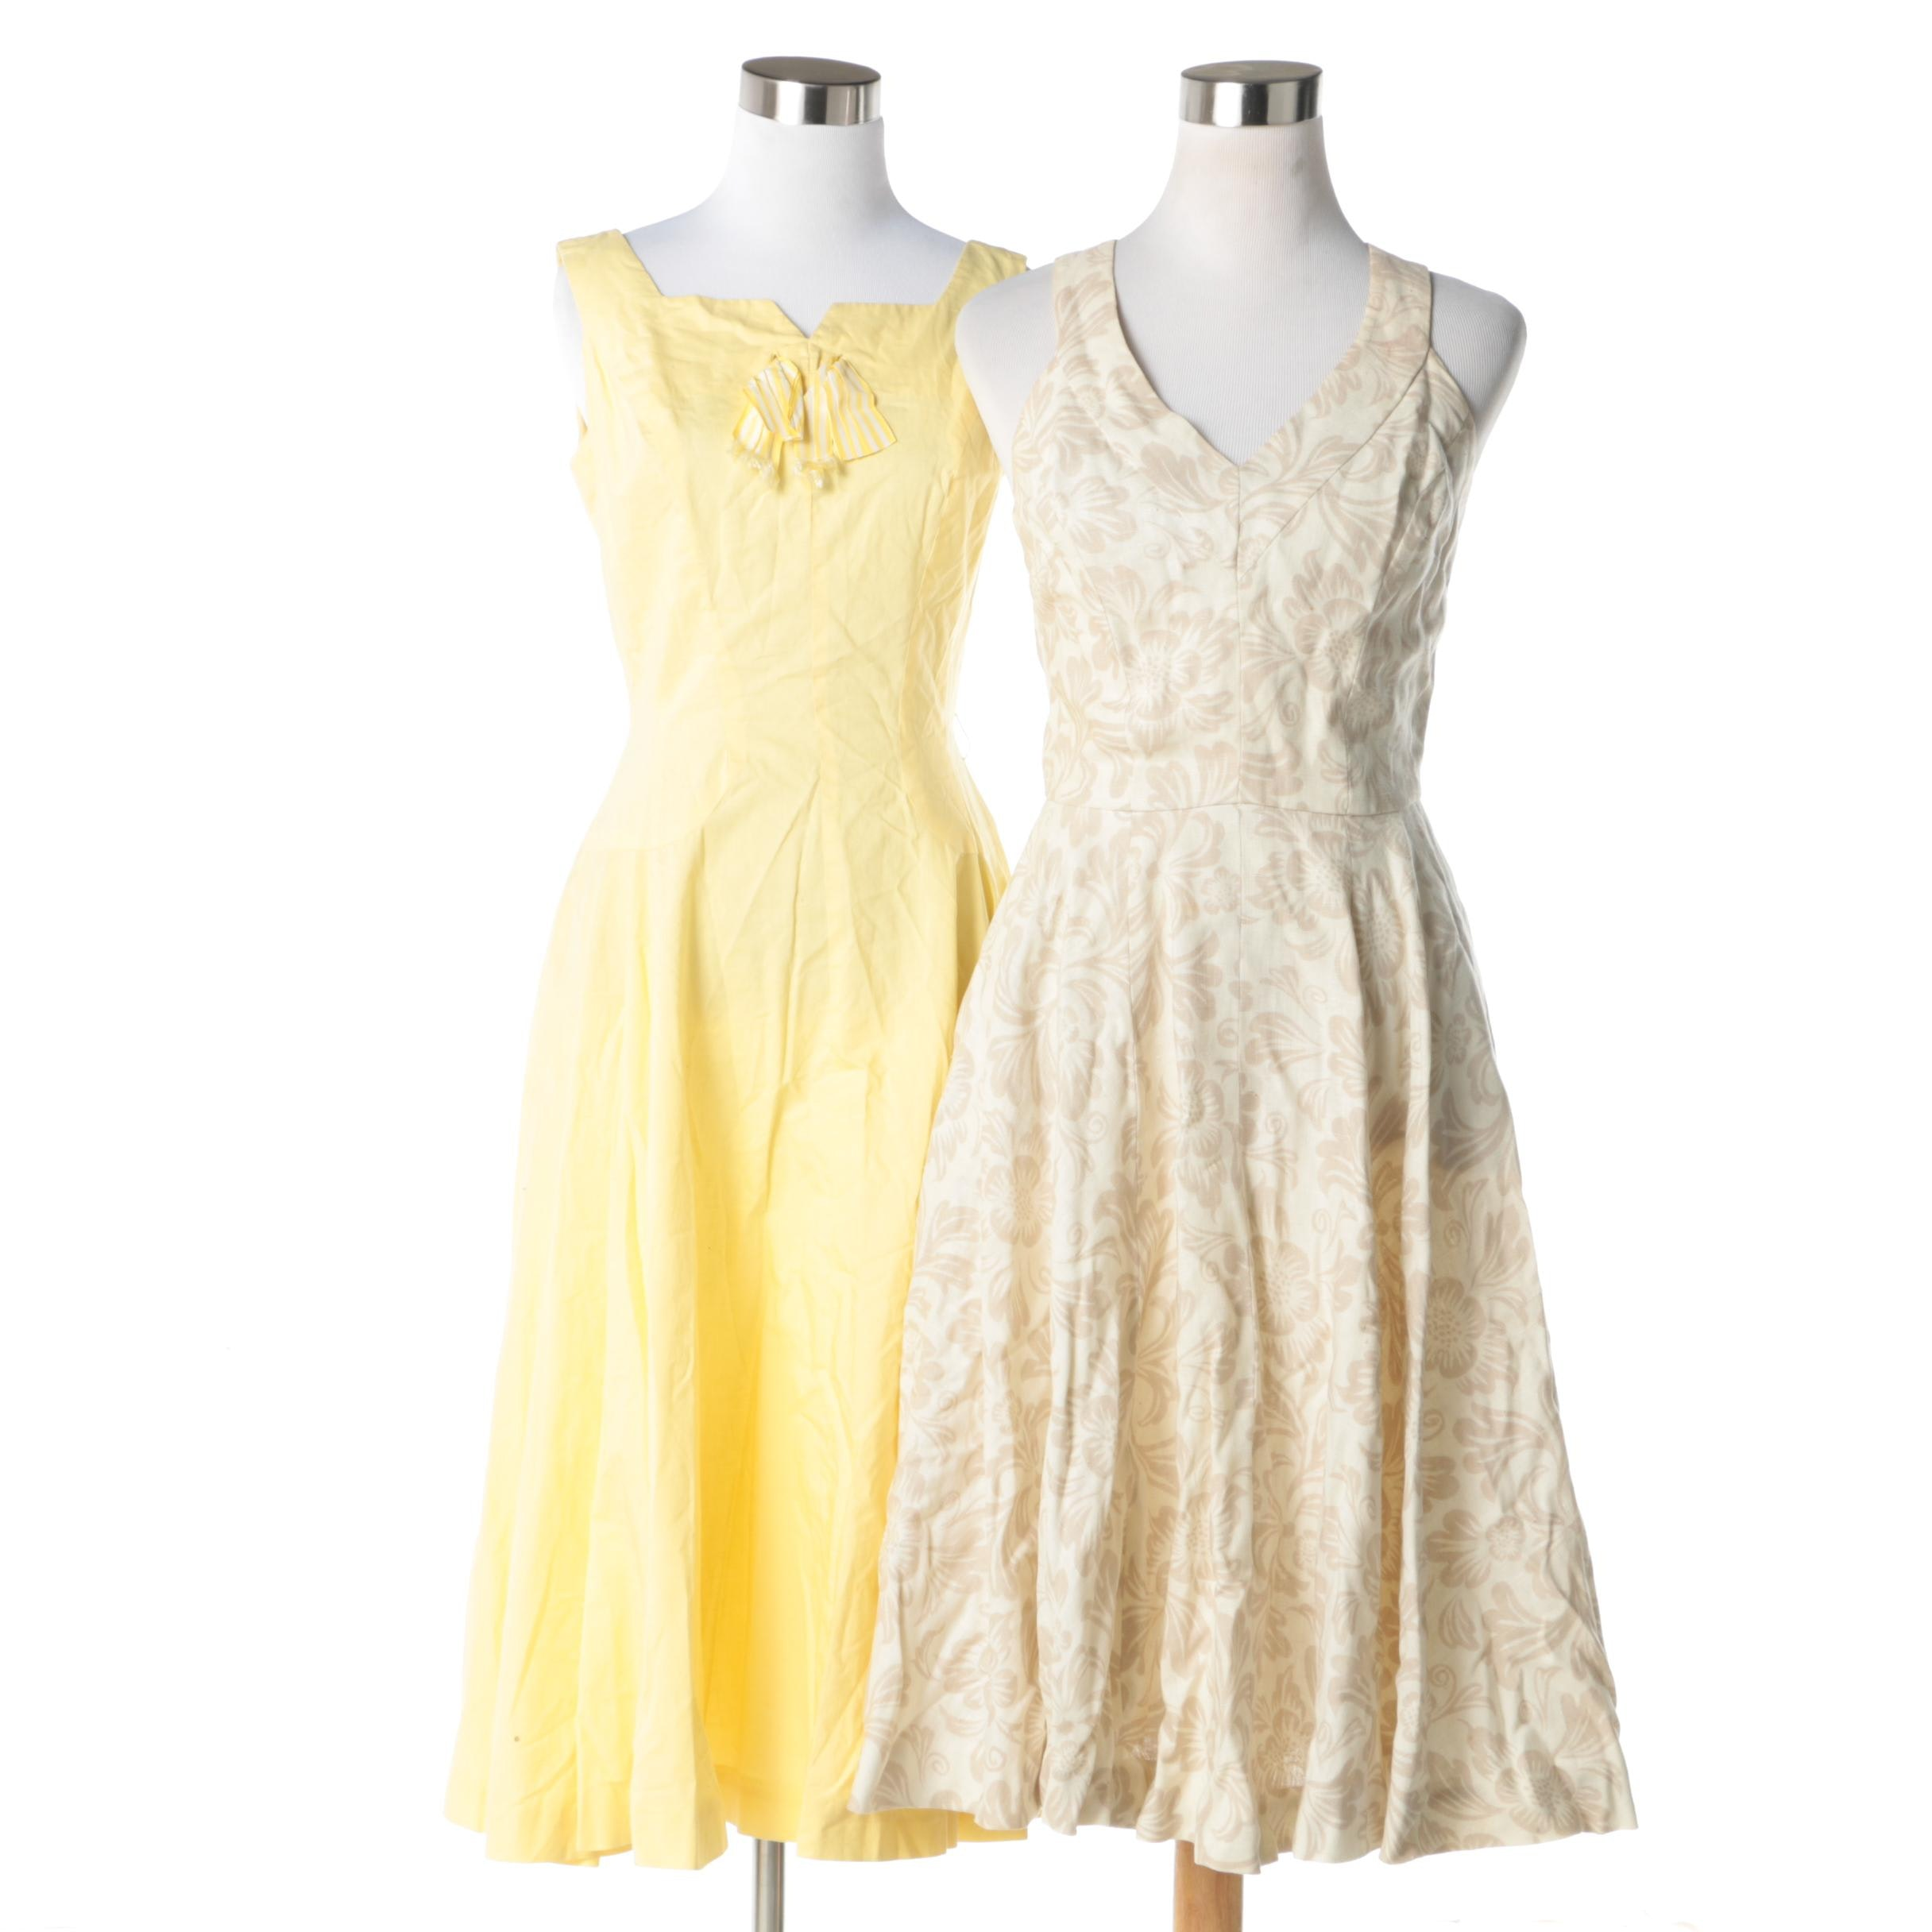 Women's Vintage Light-Colored Sleeveless Sundresses